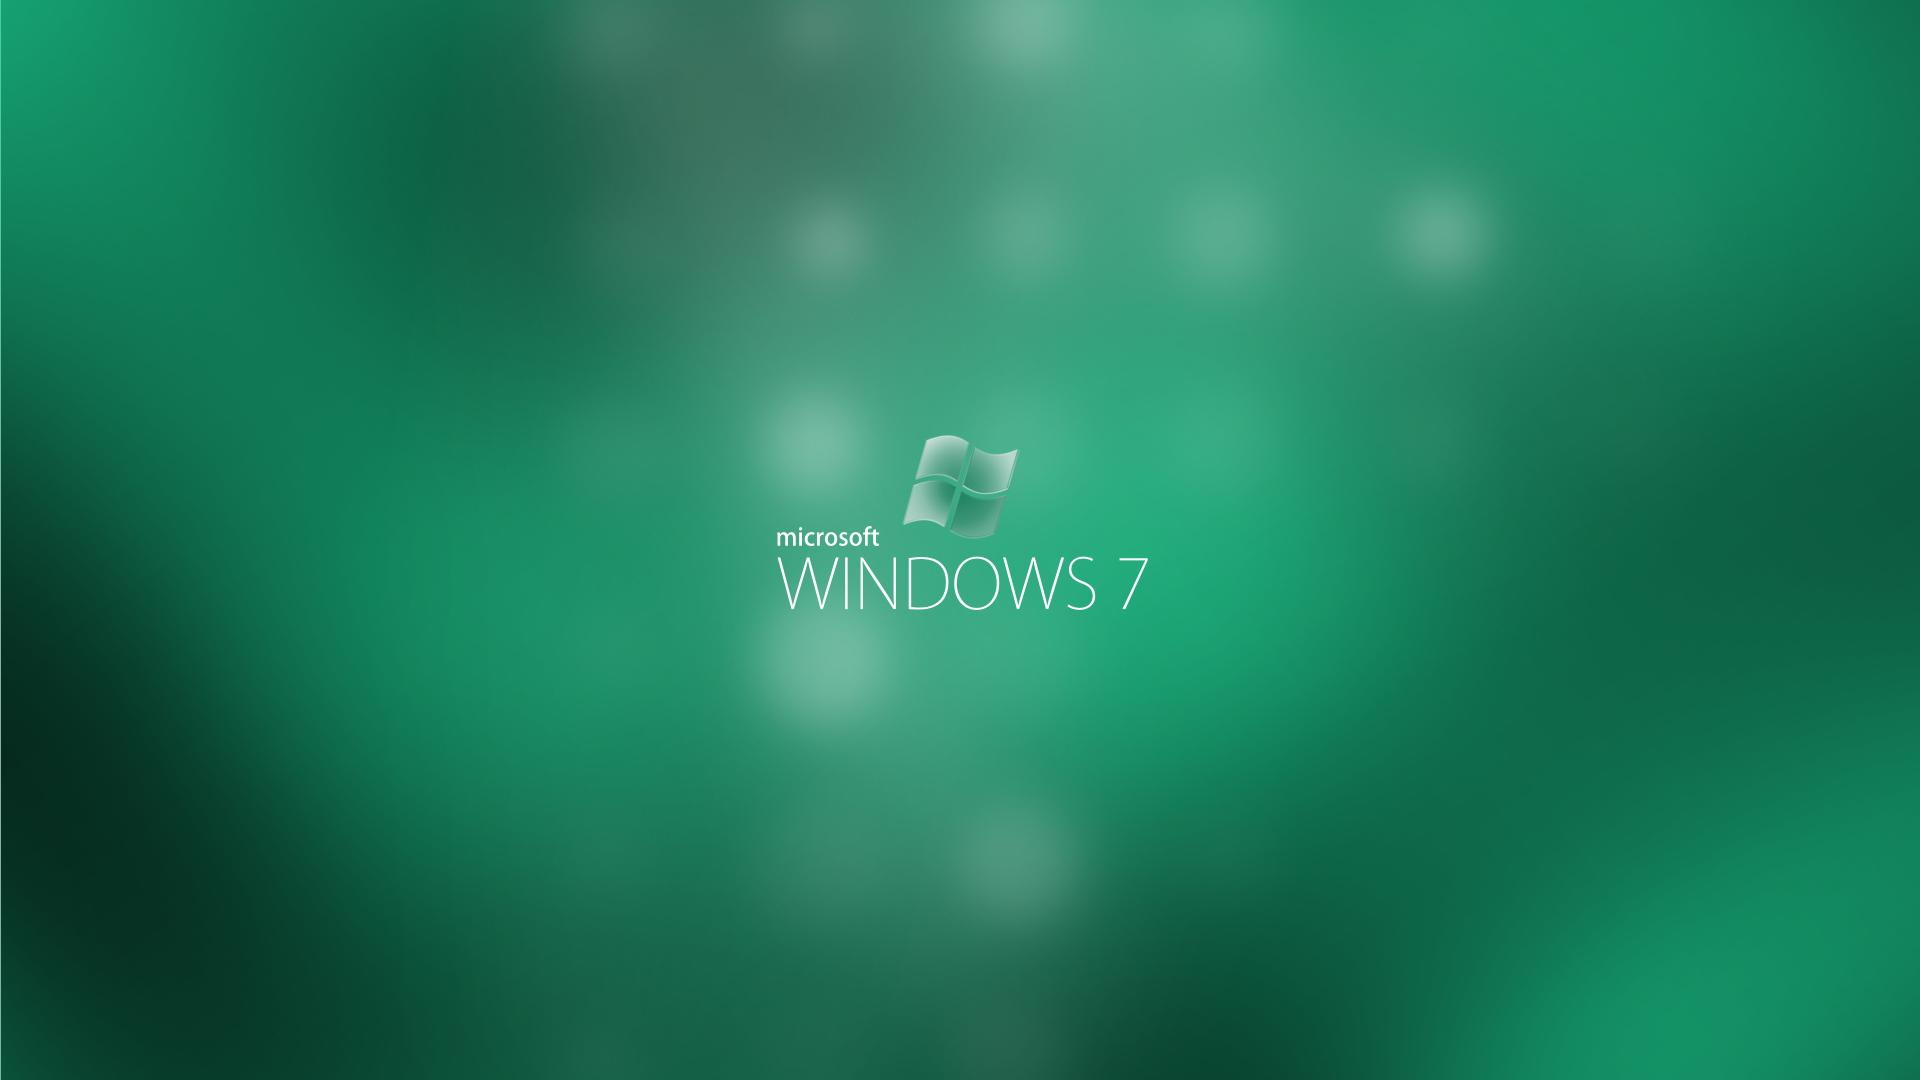 Microsoft Windows 7 green backgrounds